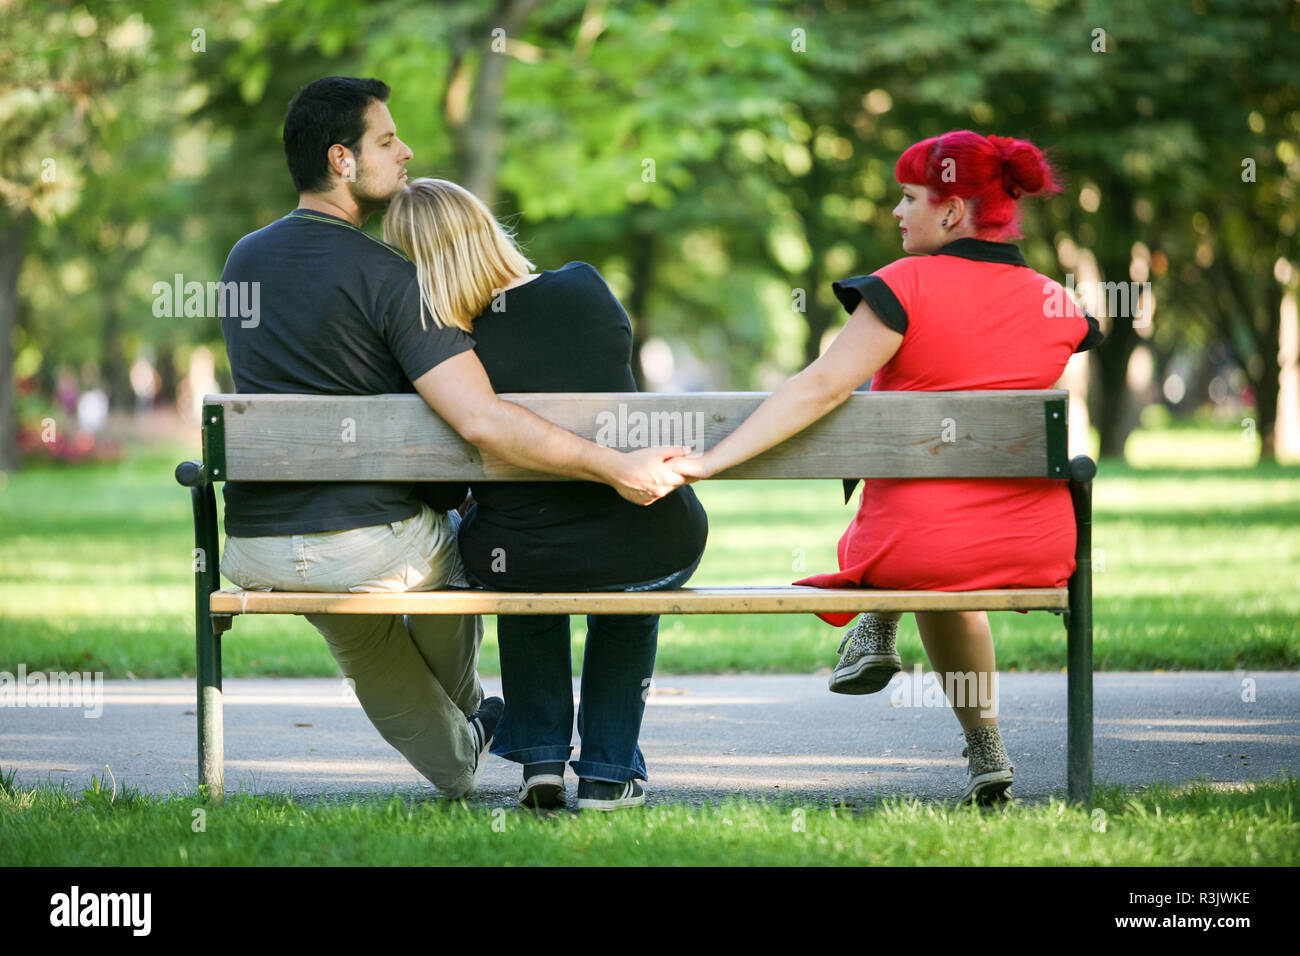 In the middle. Unfaithfulness love affair triangle. - Stock Image